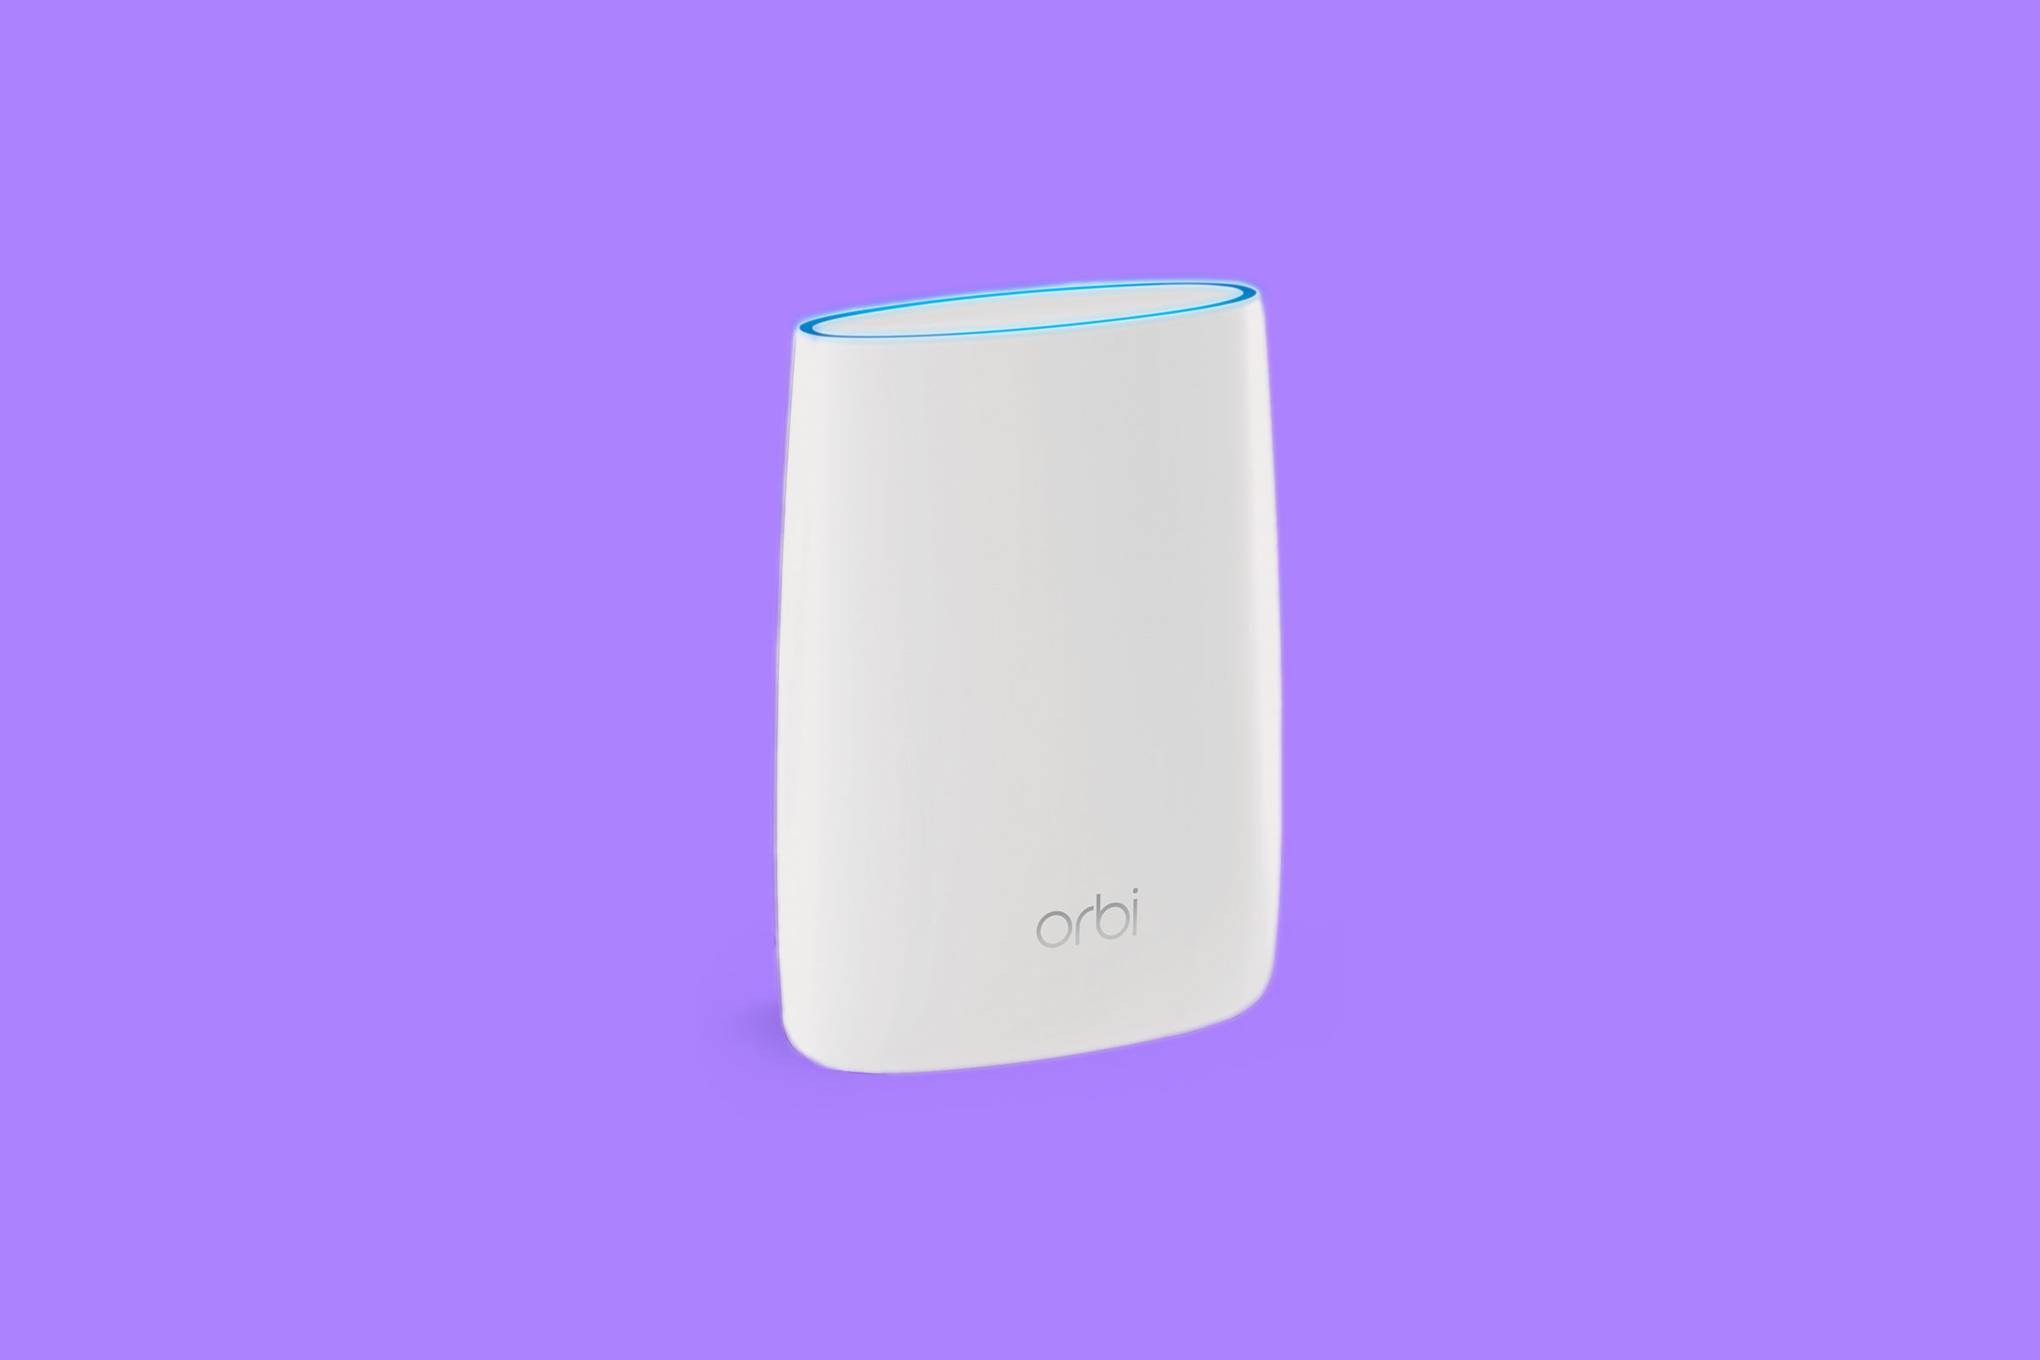 The best Wi-Fi extenders and mesh Wi-Fi routers | WIRED UK